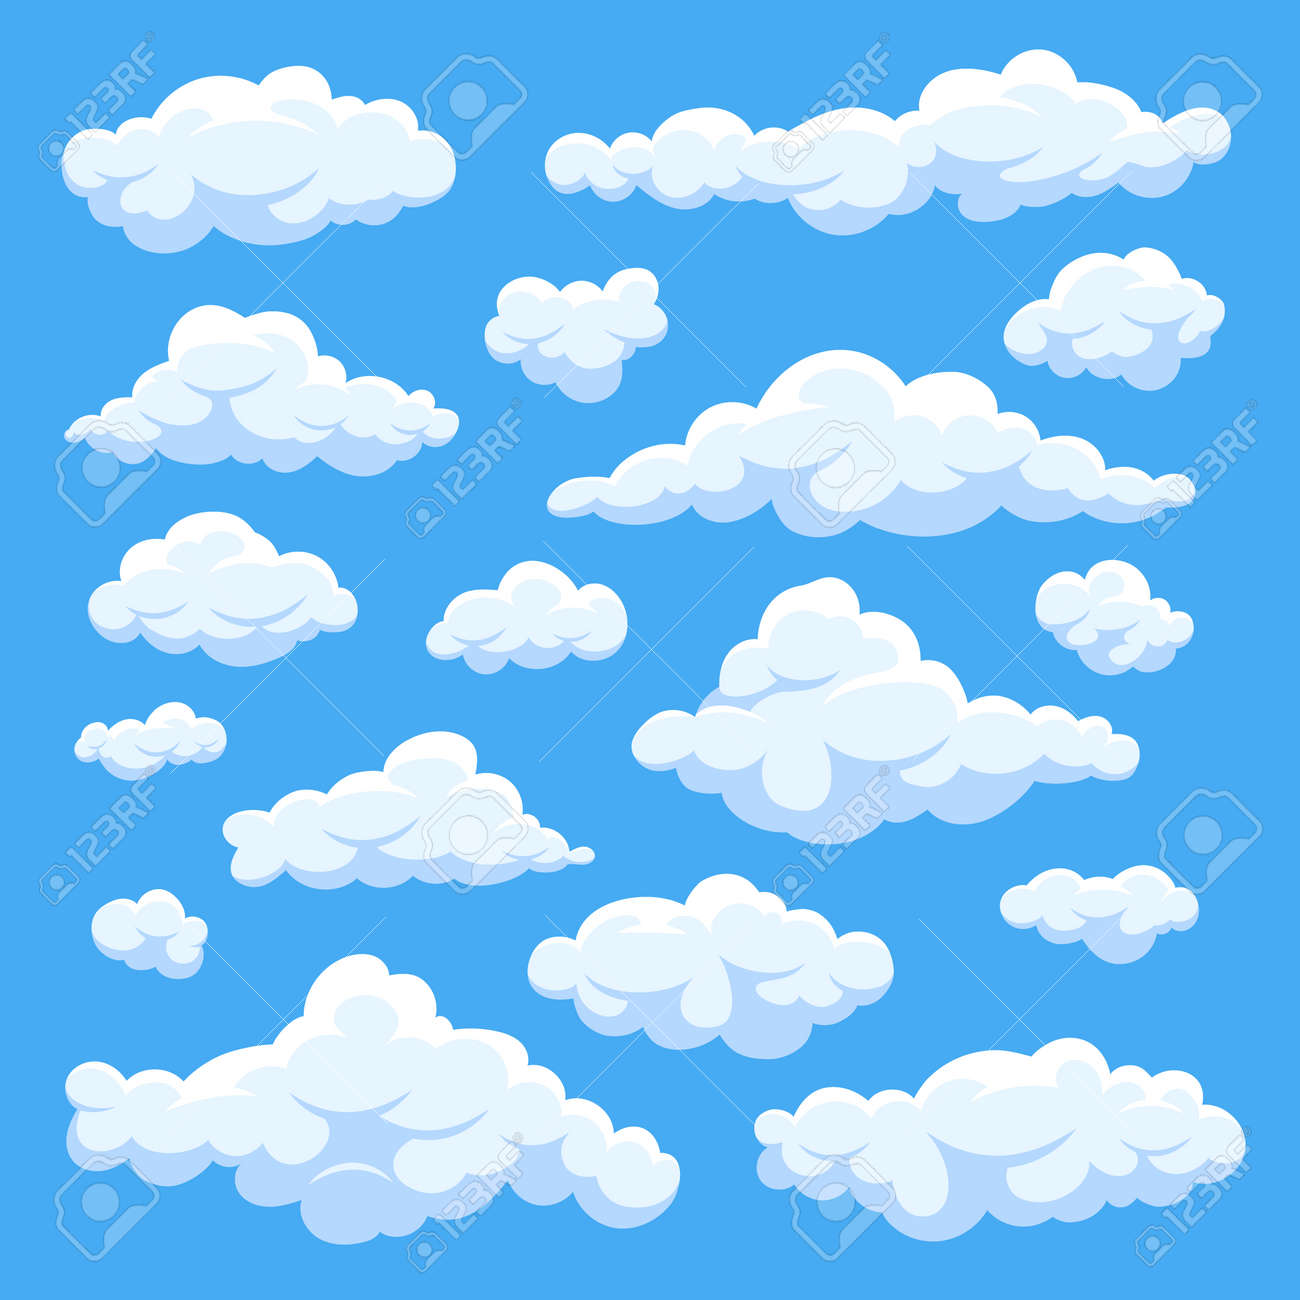 Fluffy white cartoon clouds in blue sky vector set. Cloudy day heaven. Cartoon cloudy fluffy illustration - 166828743